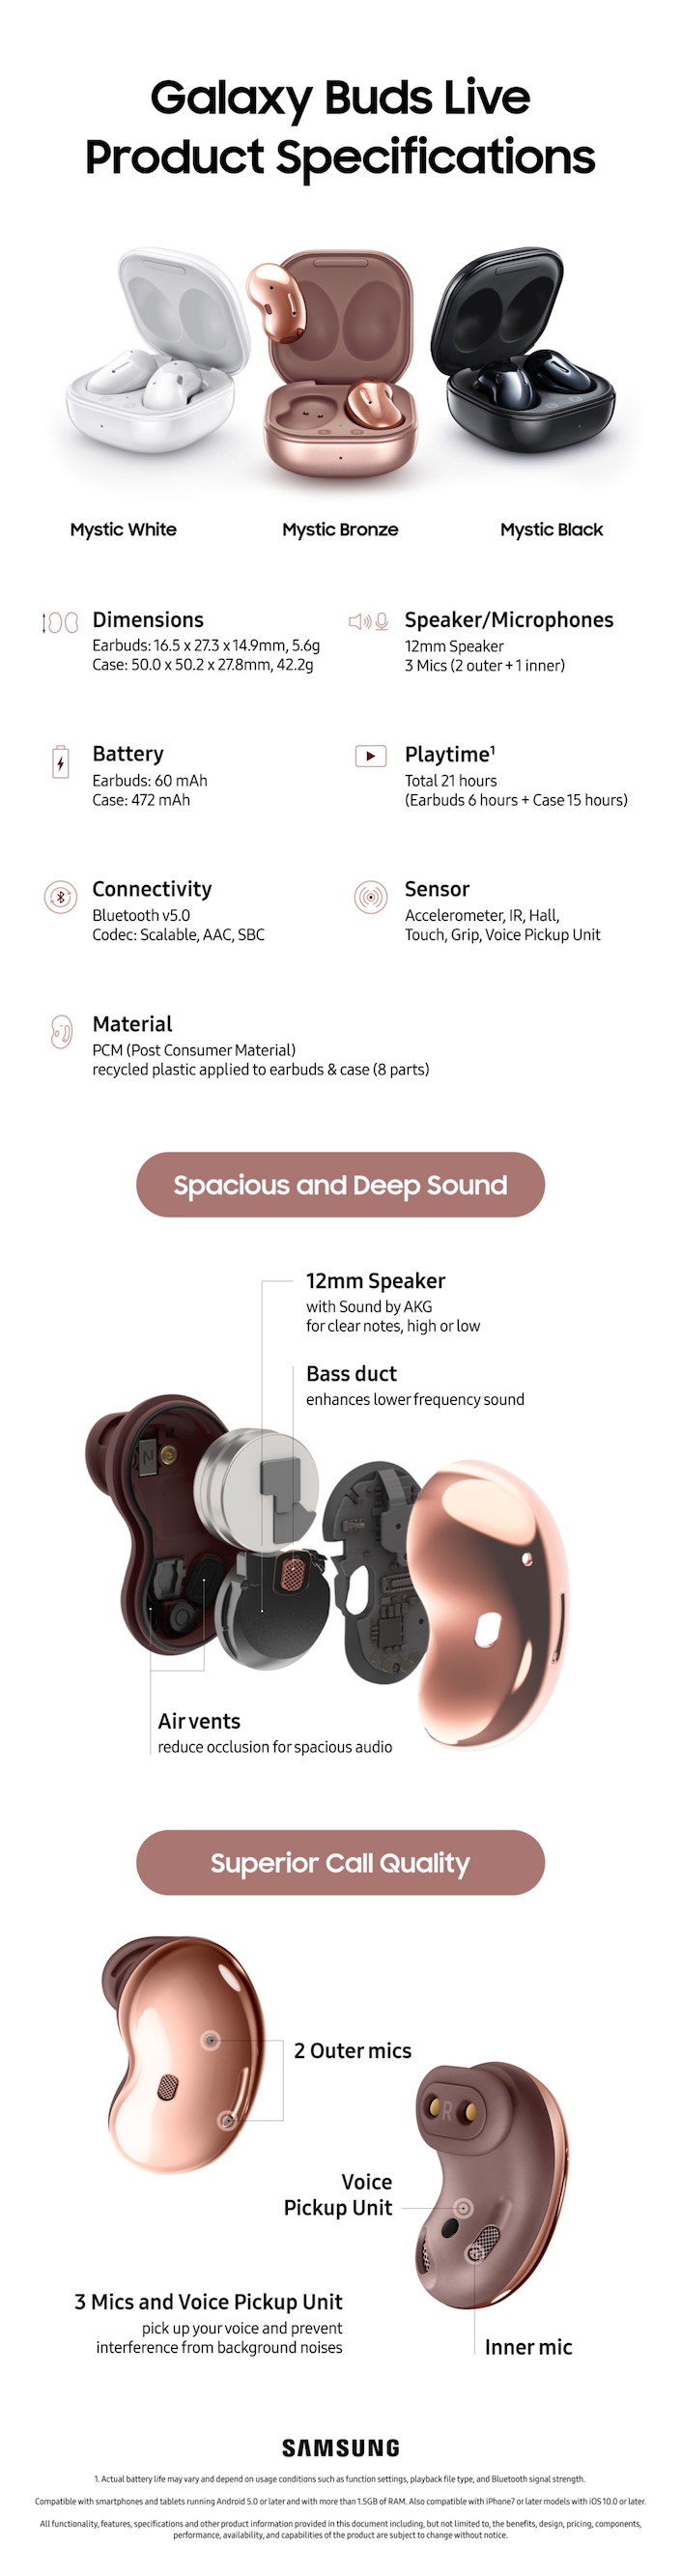 Galaxy-Buds-Live-Spec-Infographic main